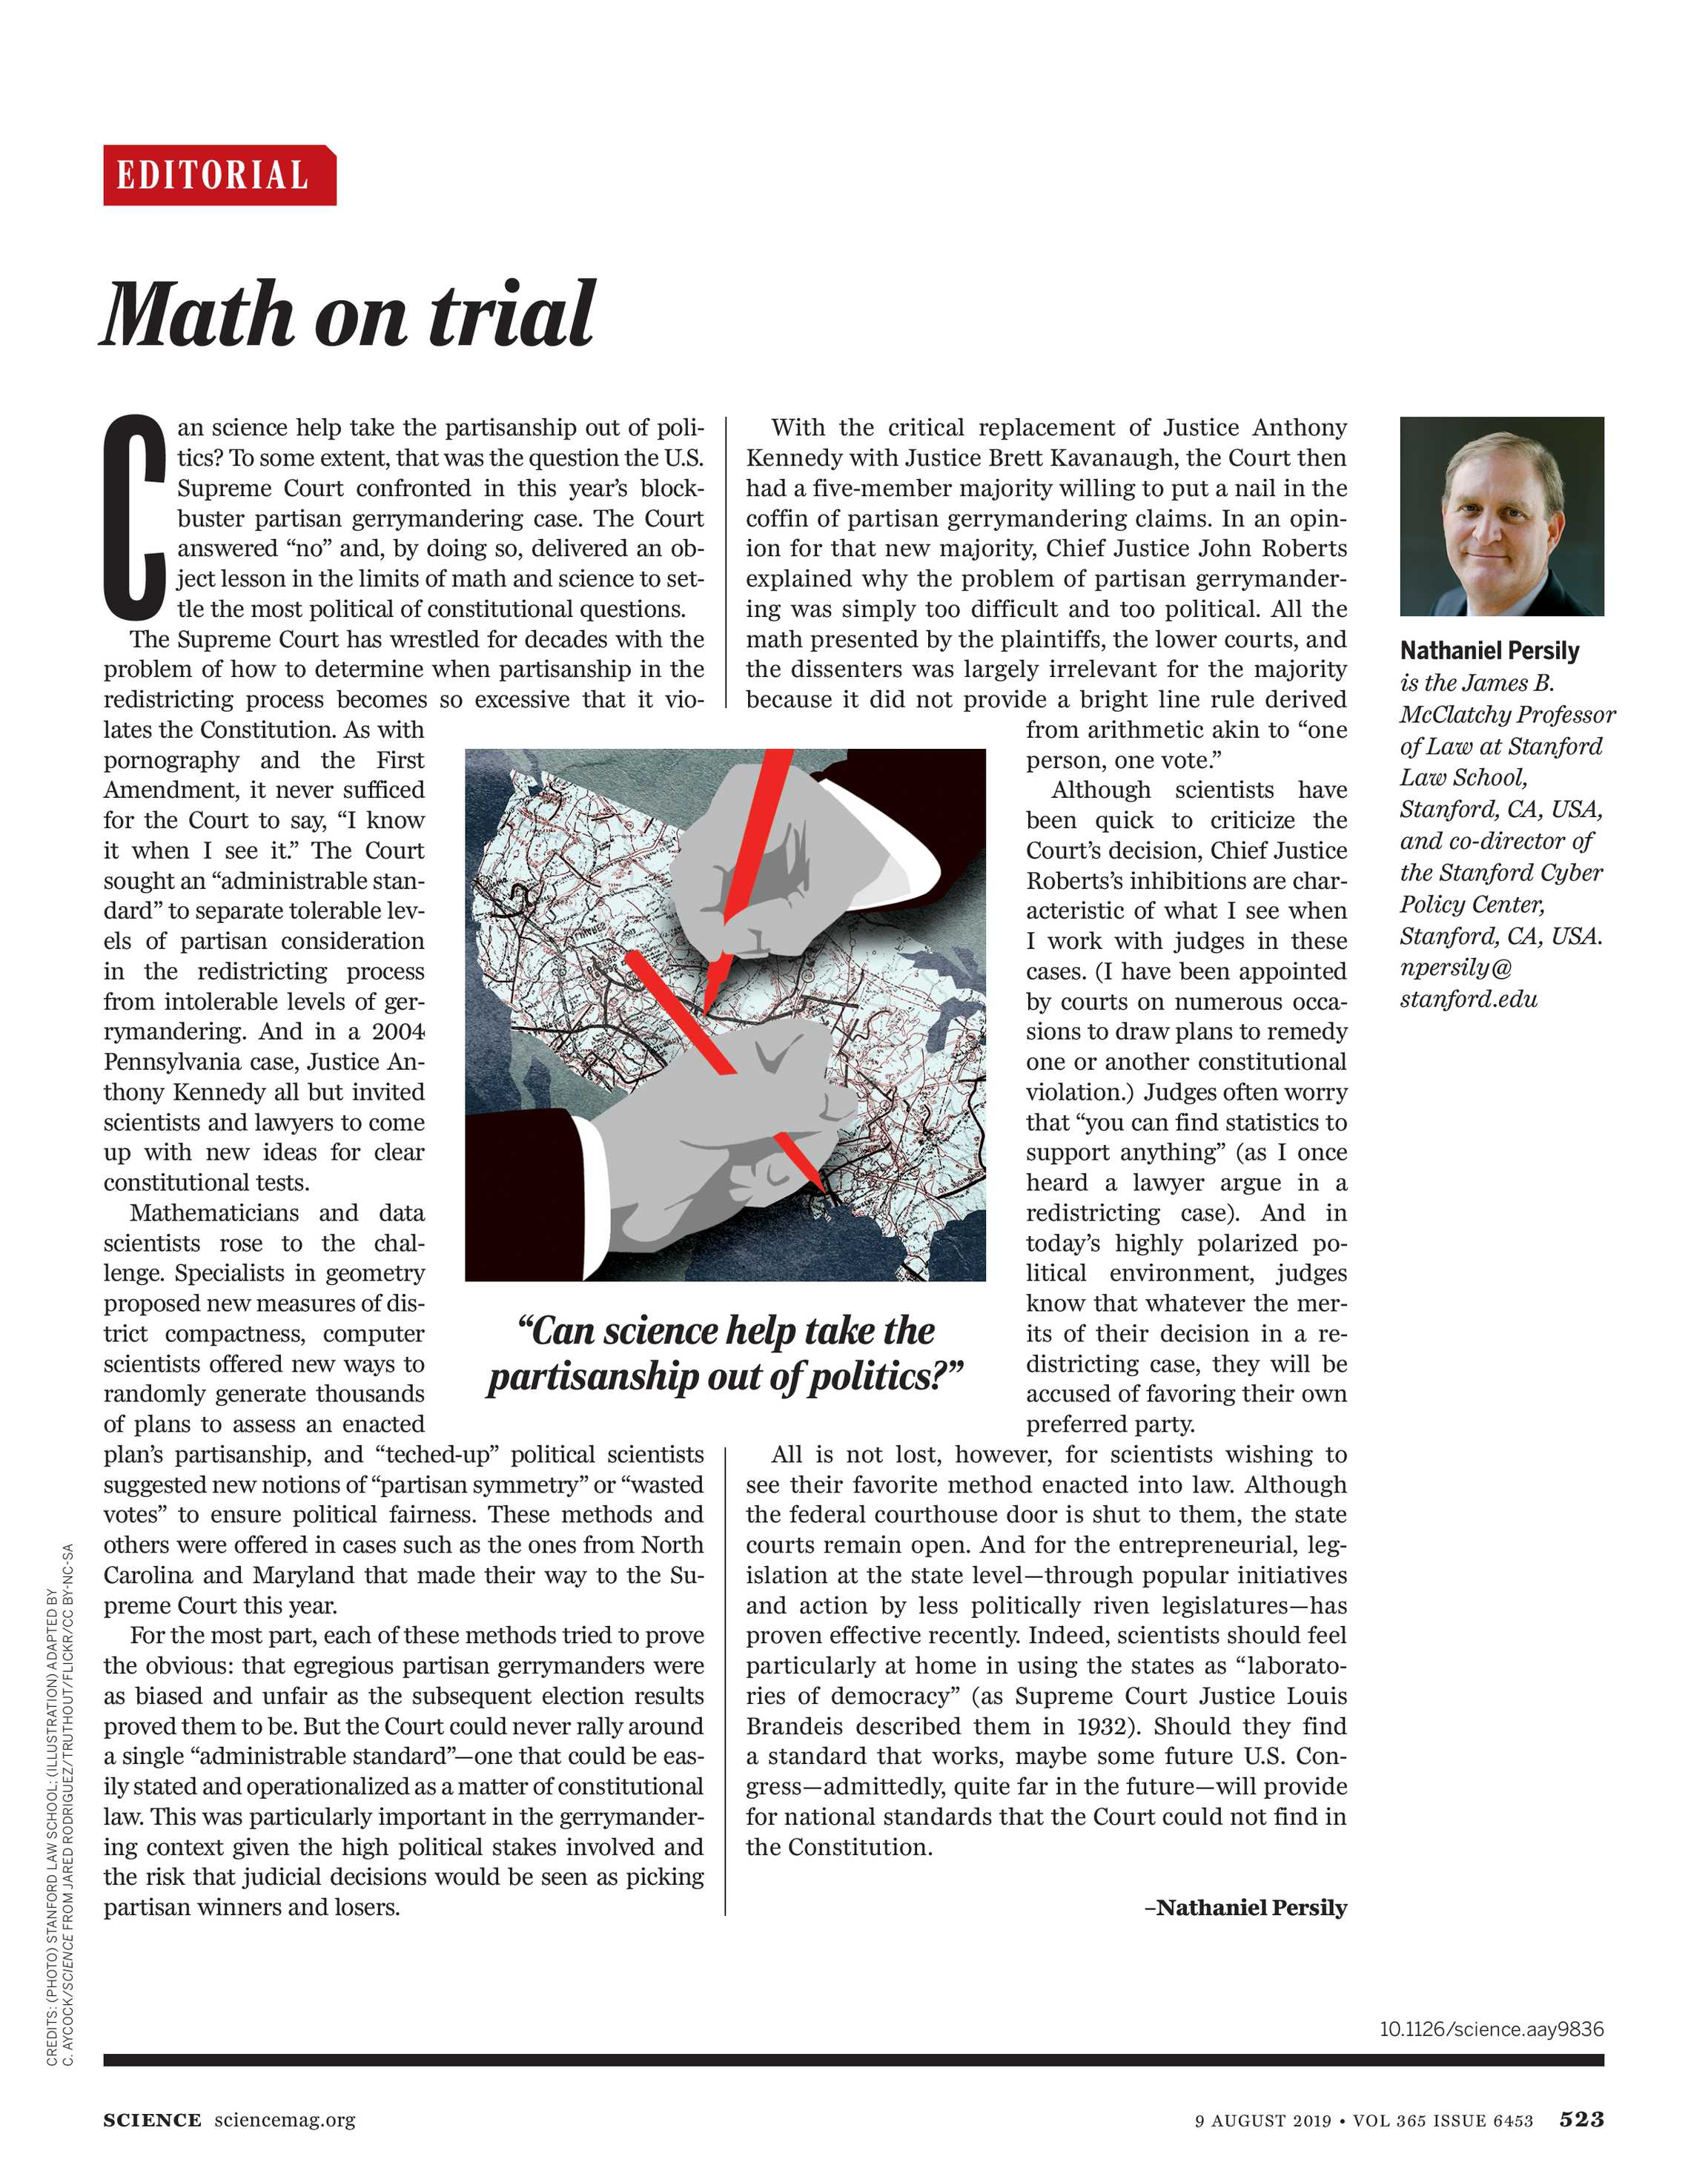 Science Magazine - August 9, 2019 - page 523